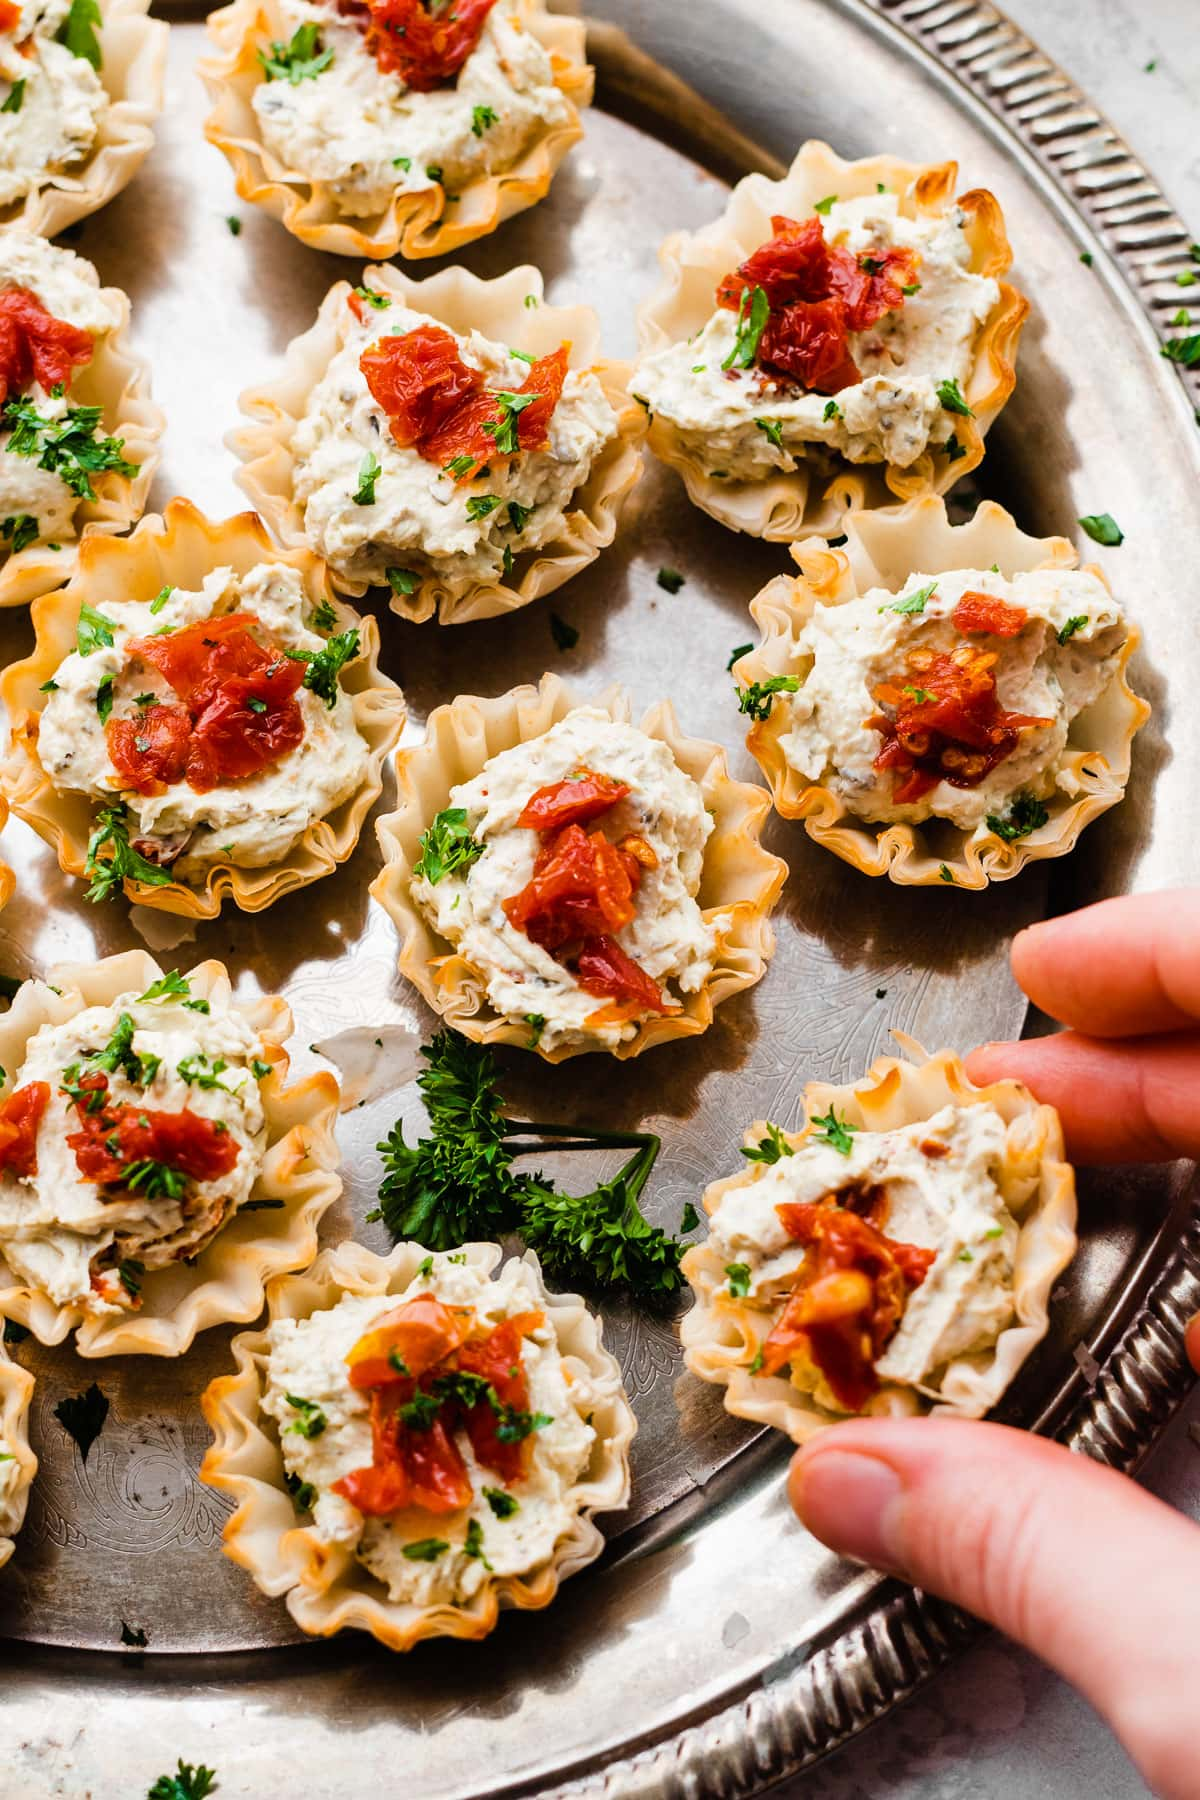 Sun Dried Tomato Pesto Bites are an easy appetizer recipe to have on hand for any part. Cream cheese pesto filling in phyllo dough with tangy sun dried tomatoes on top. Yum!